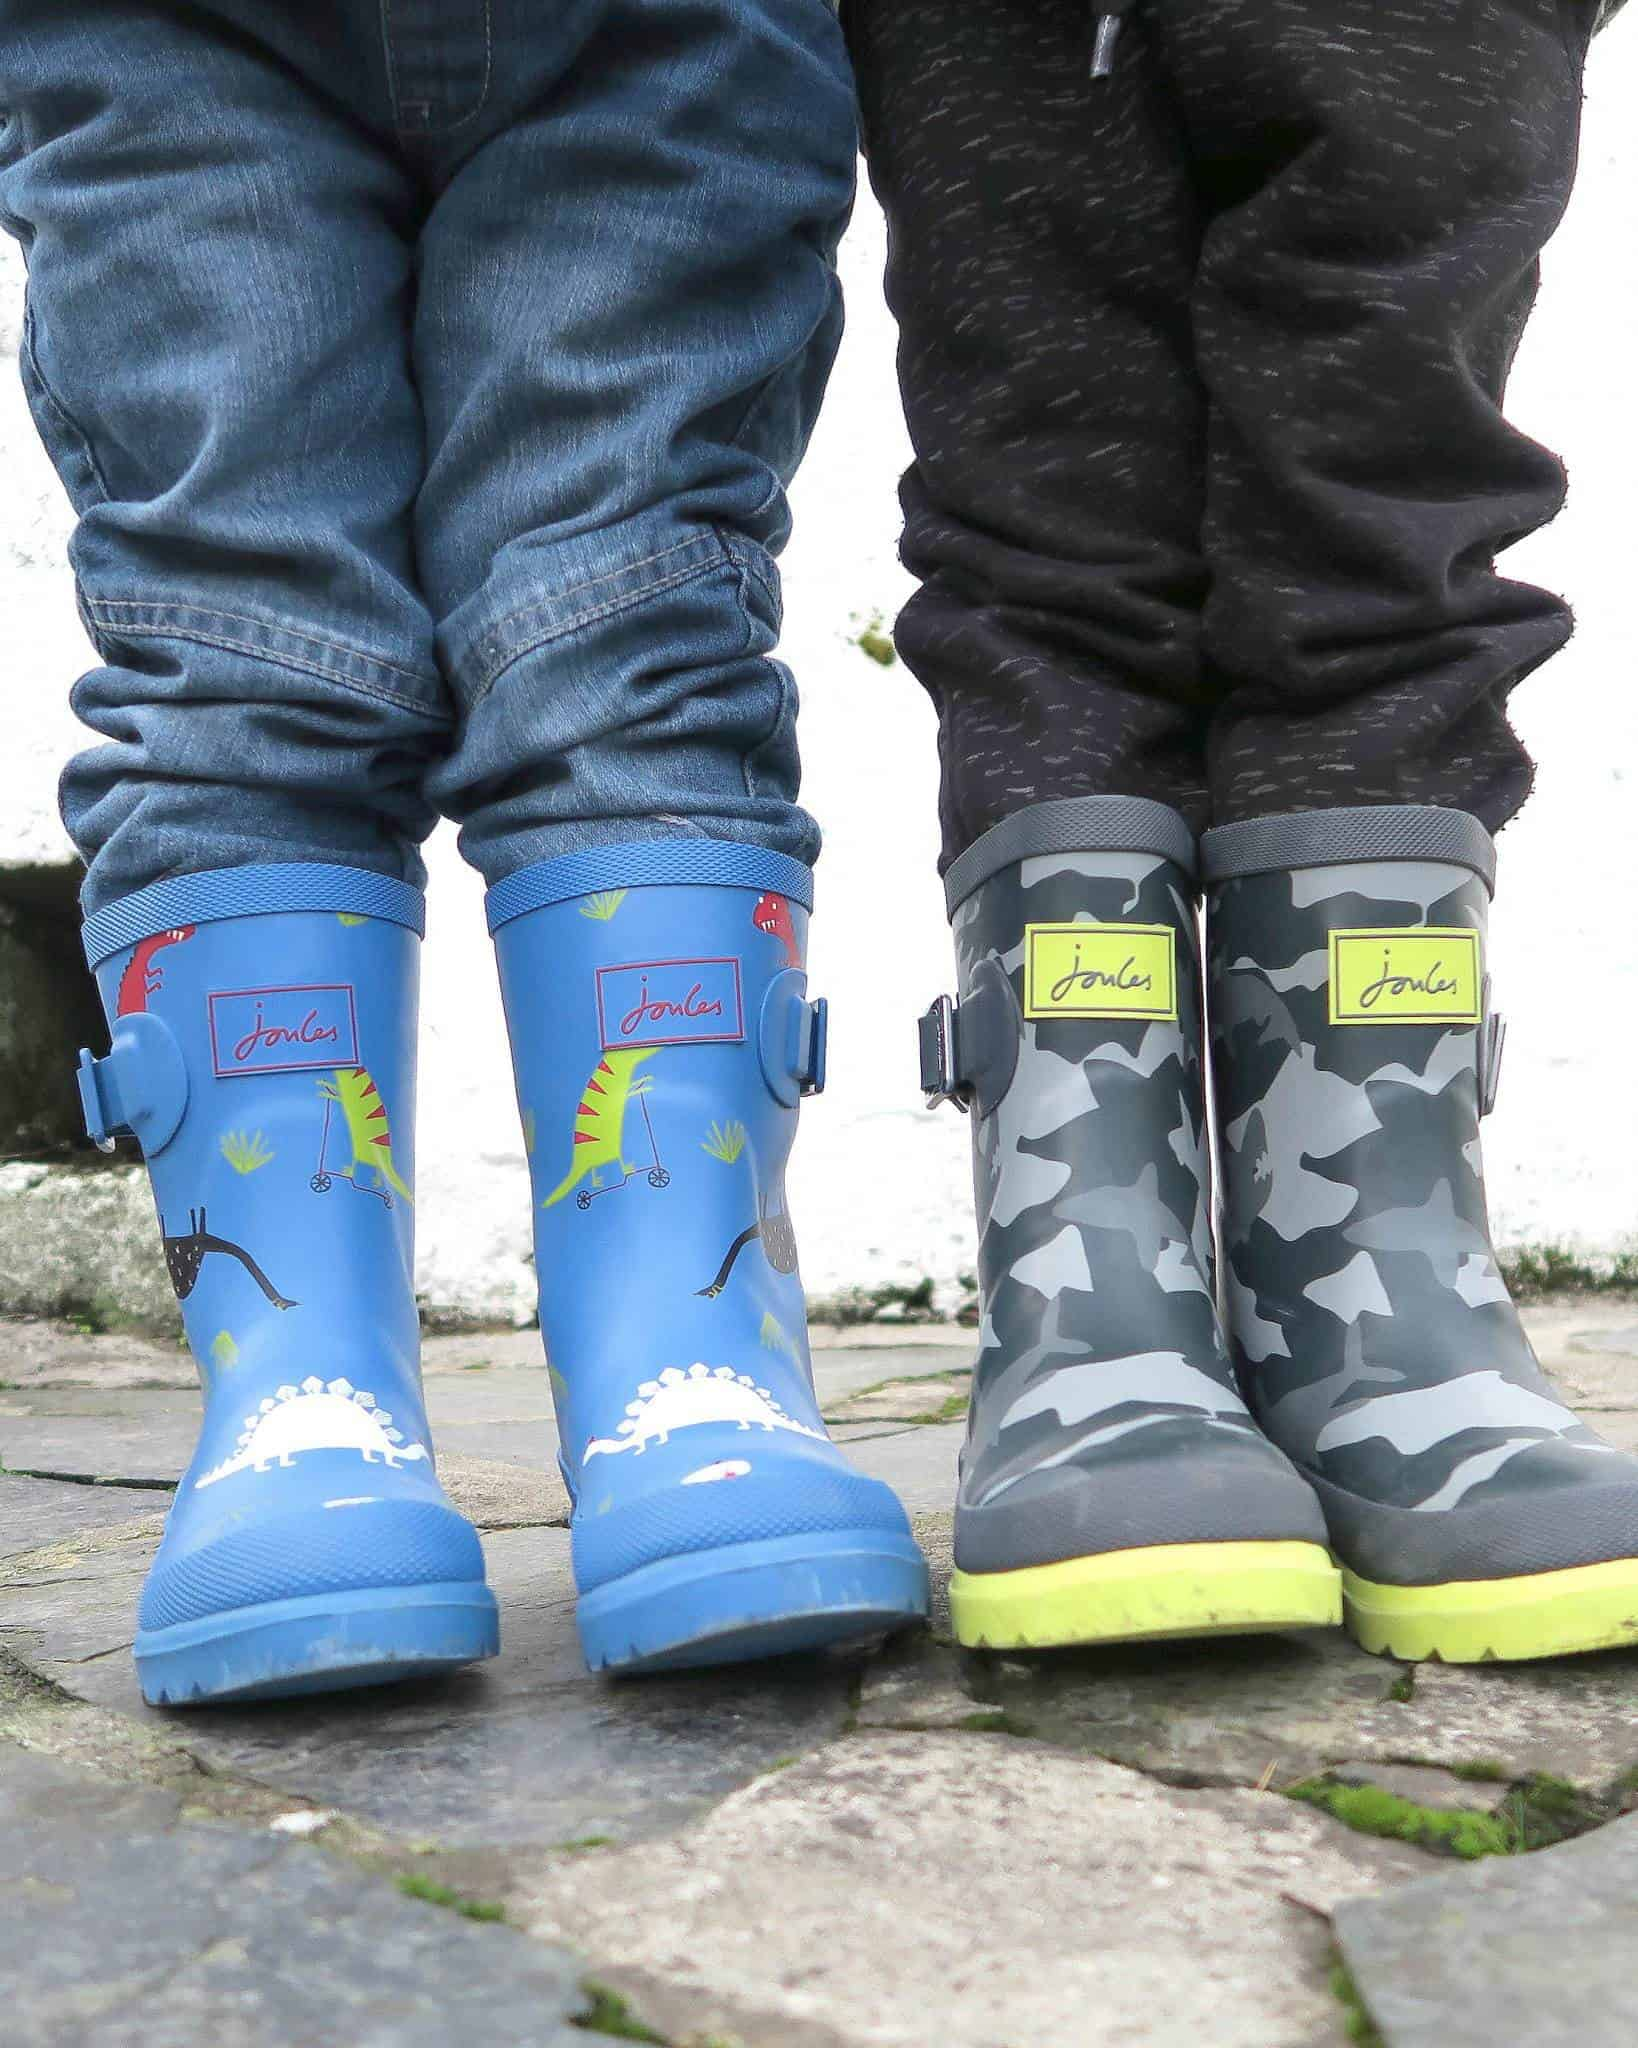 Joules wellies | Me and mine Feb 2017